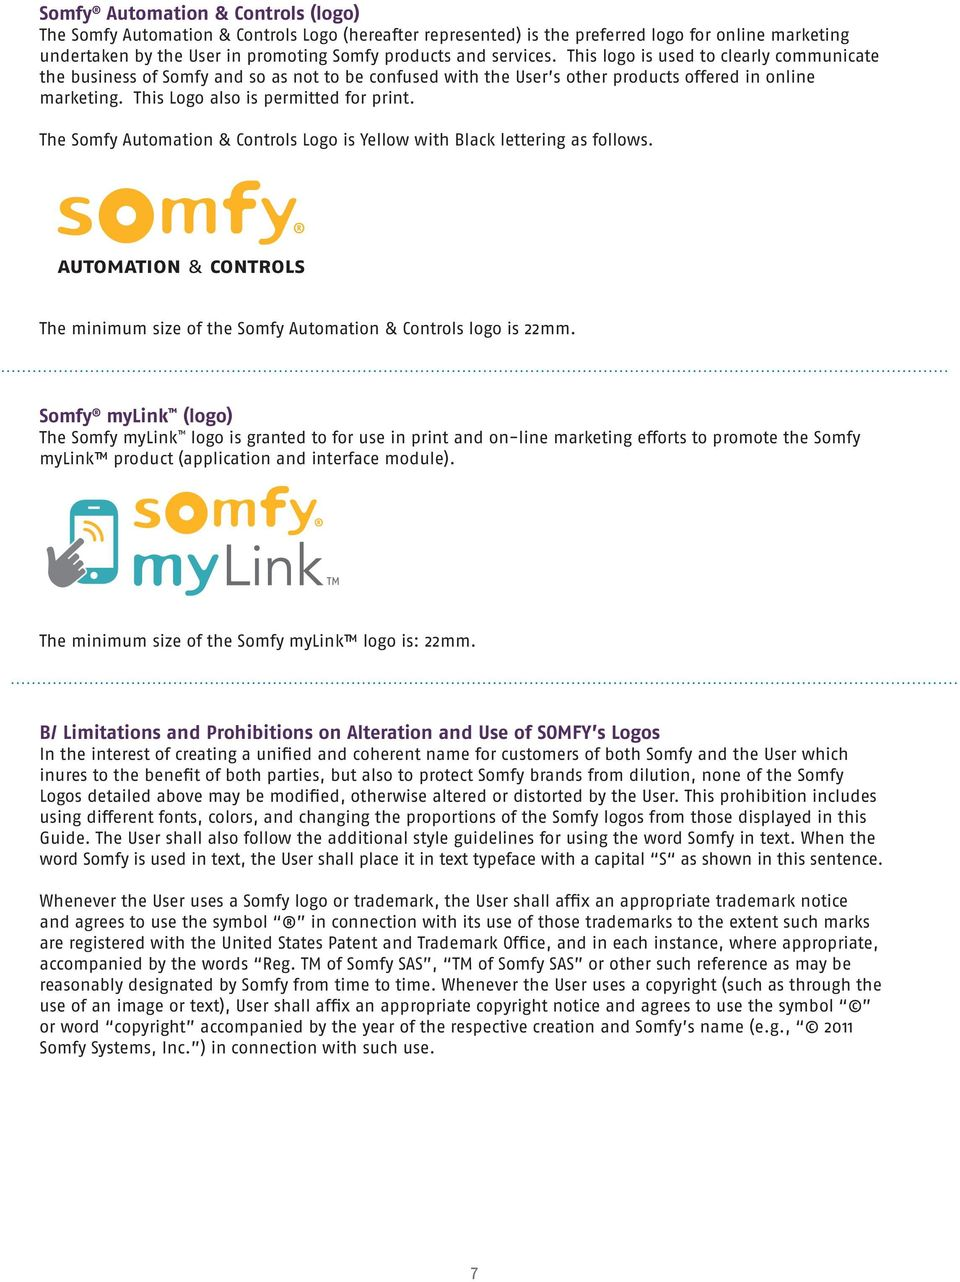 The Somfy Automation & Controls Logo is Yellow with Black lettering as follows. The minimum size of the Somfy Automation & Controls logo is 22mm.